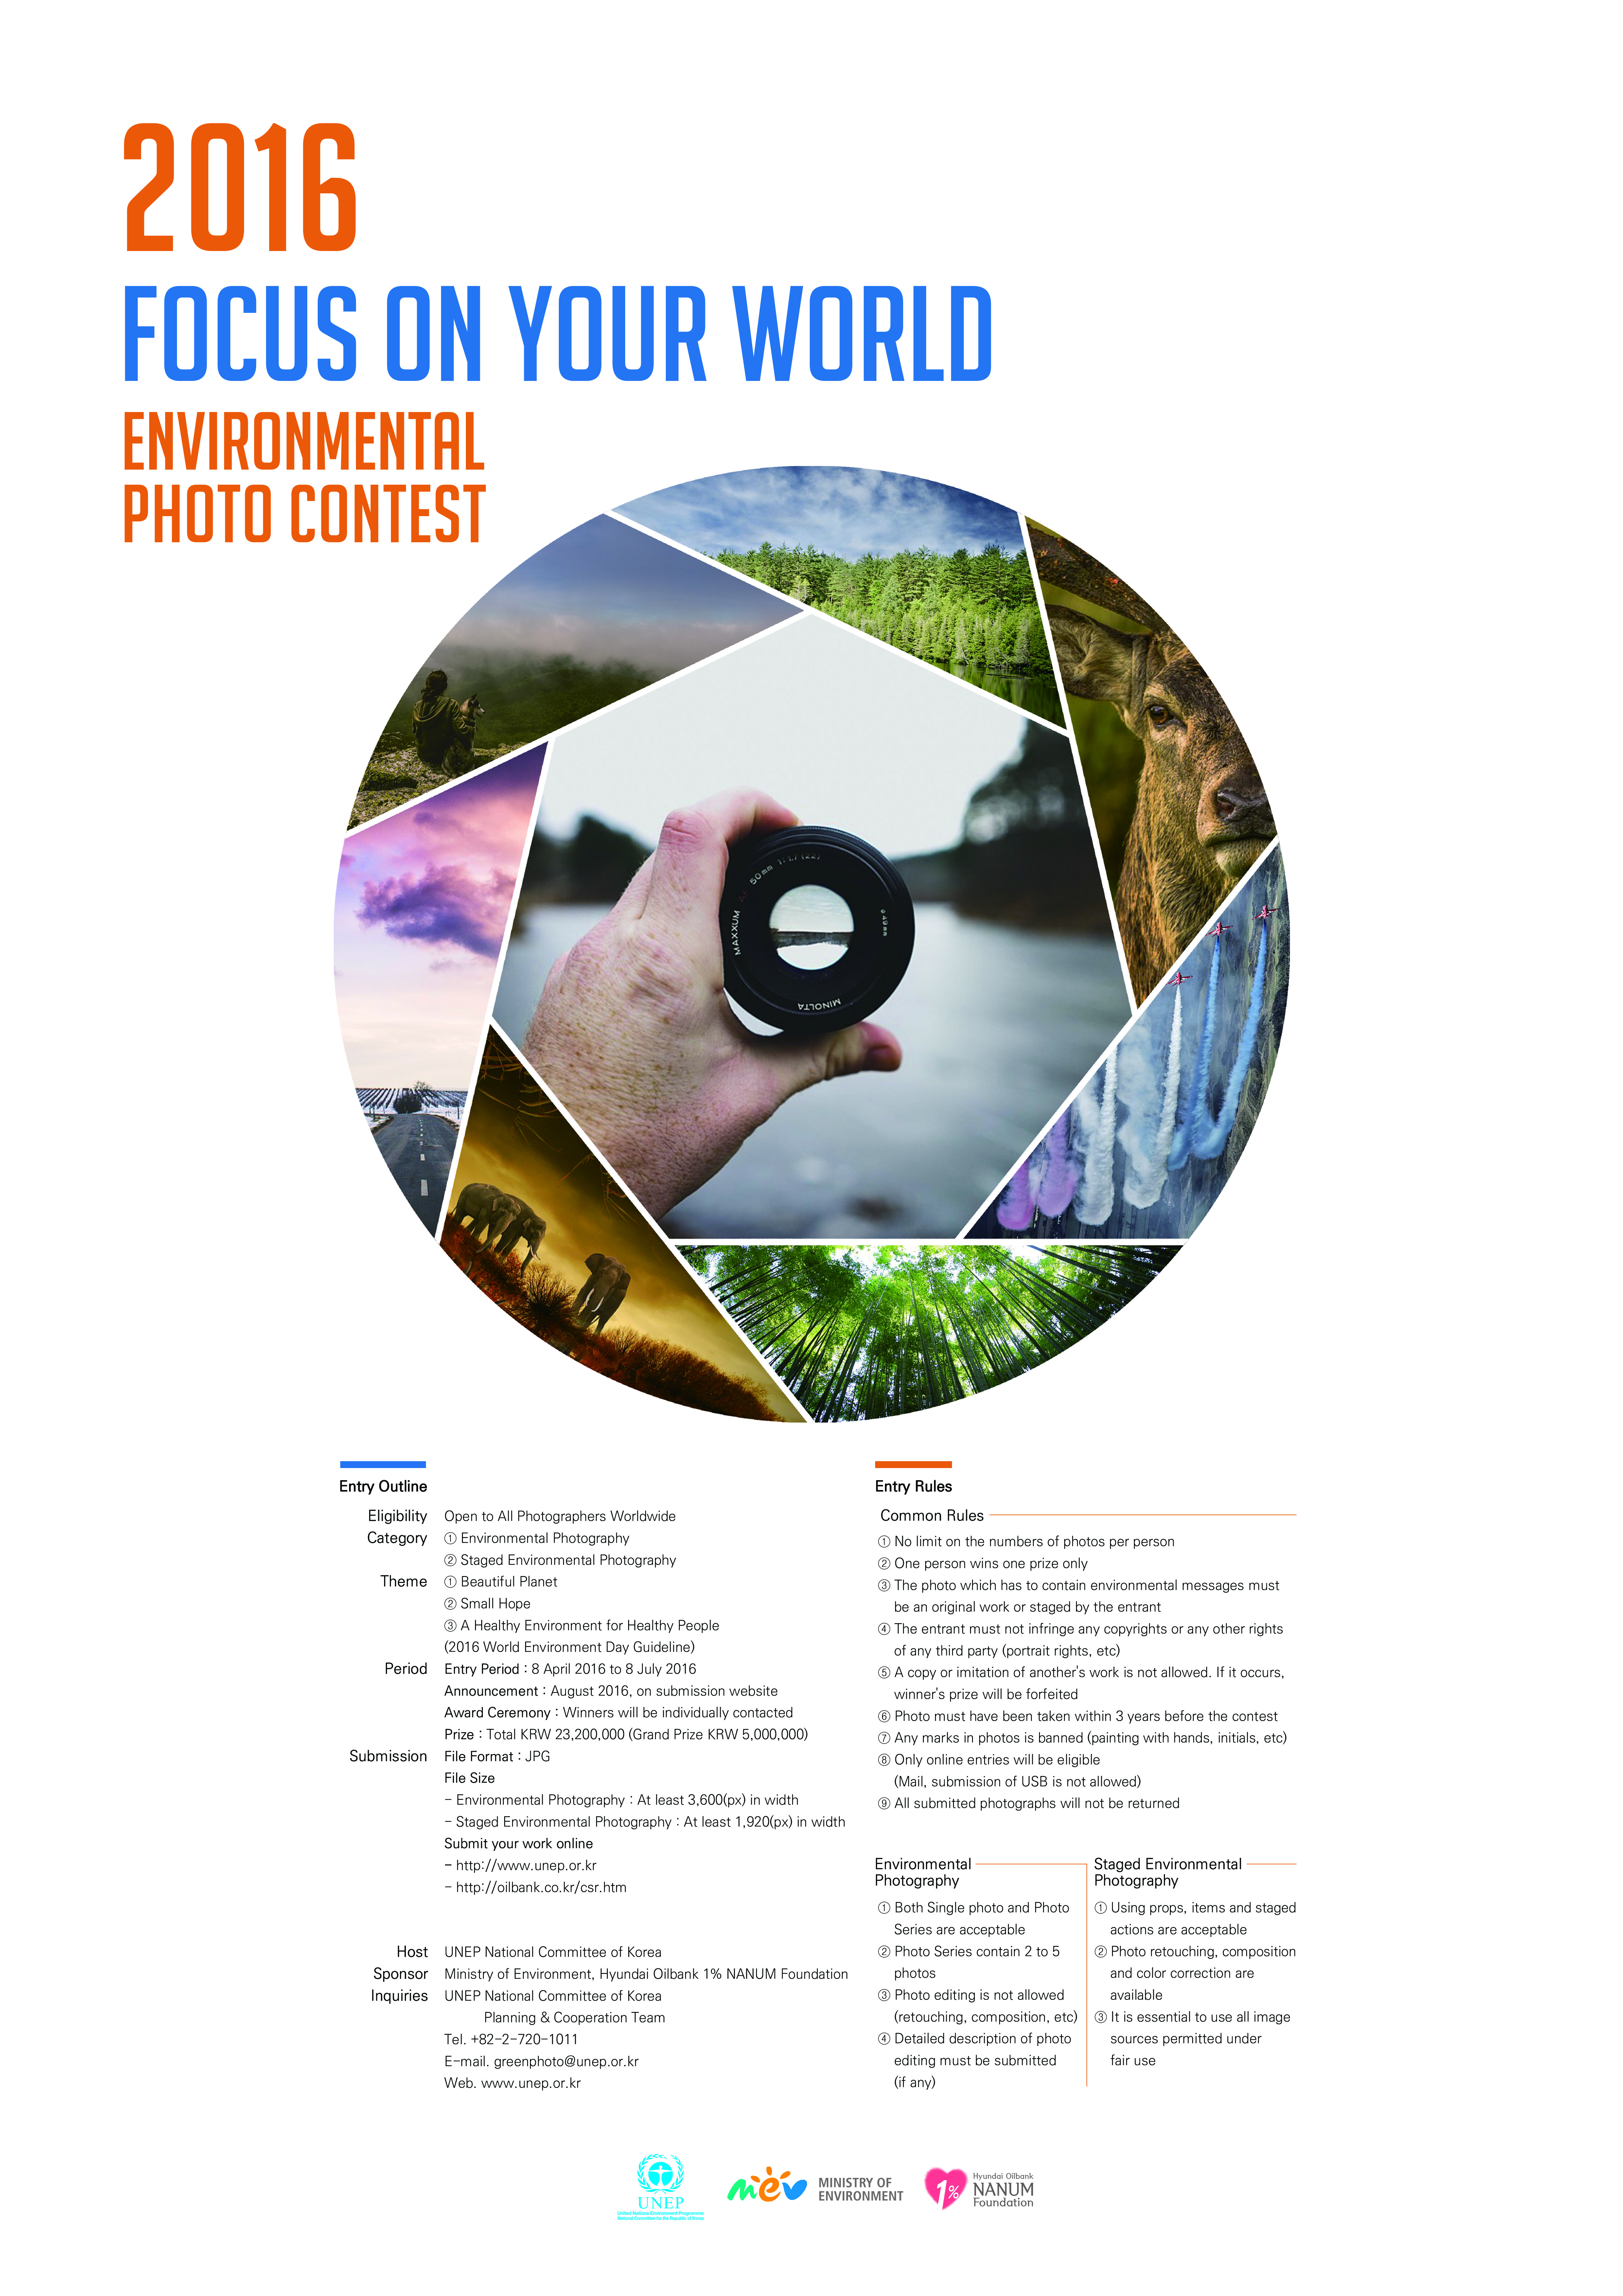 2016 Focus On Your World Environmental Photo Contest Photo Contest